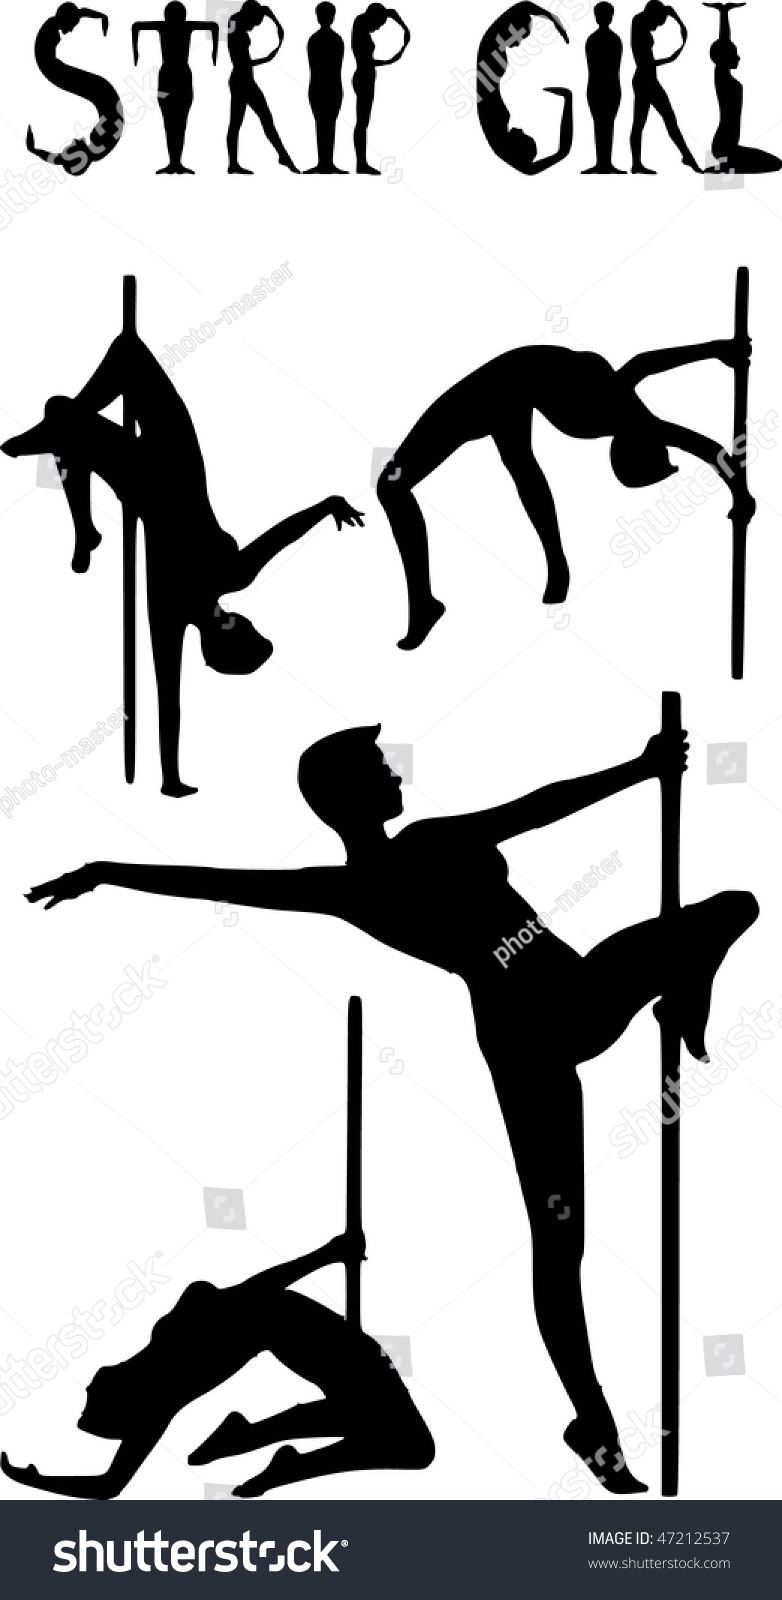 Set of vector silhouettes of a naked stripper woman with a pole. Set Vector Silhouettes Naked Stripper Woman Stock Vector 47212537